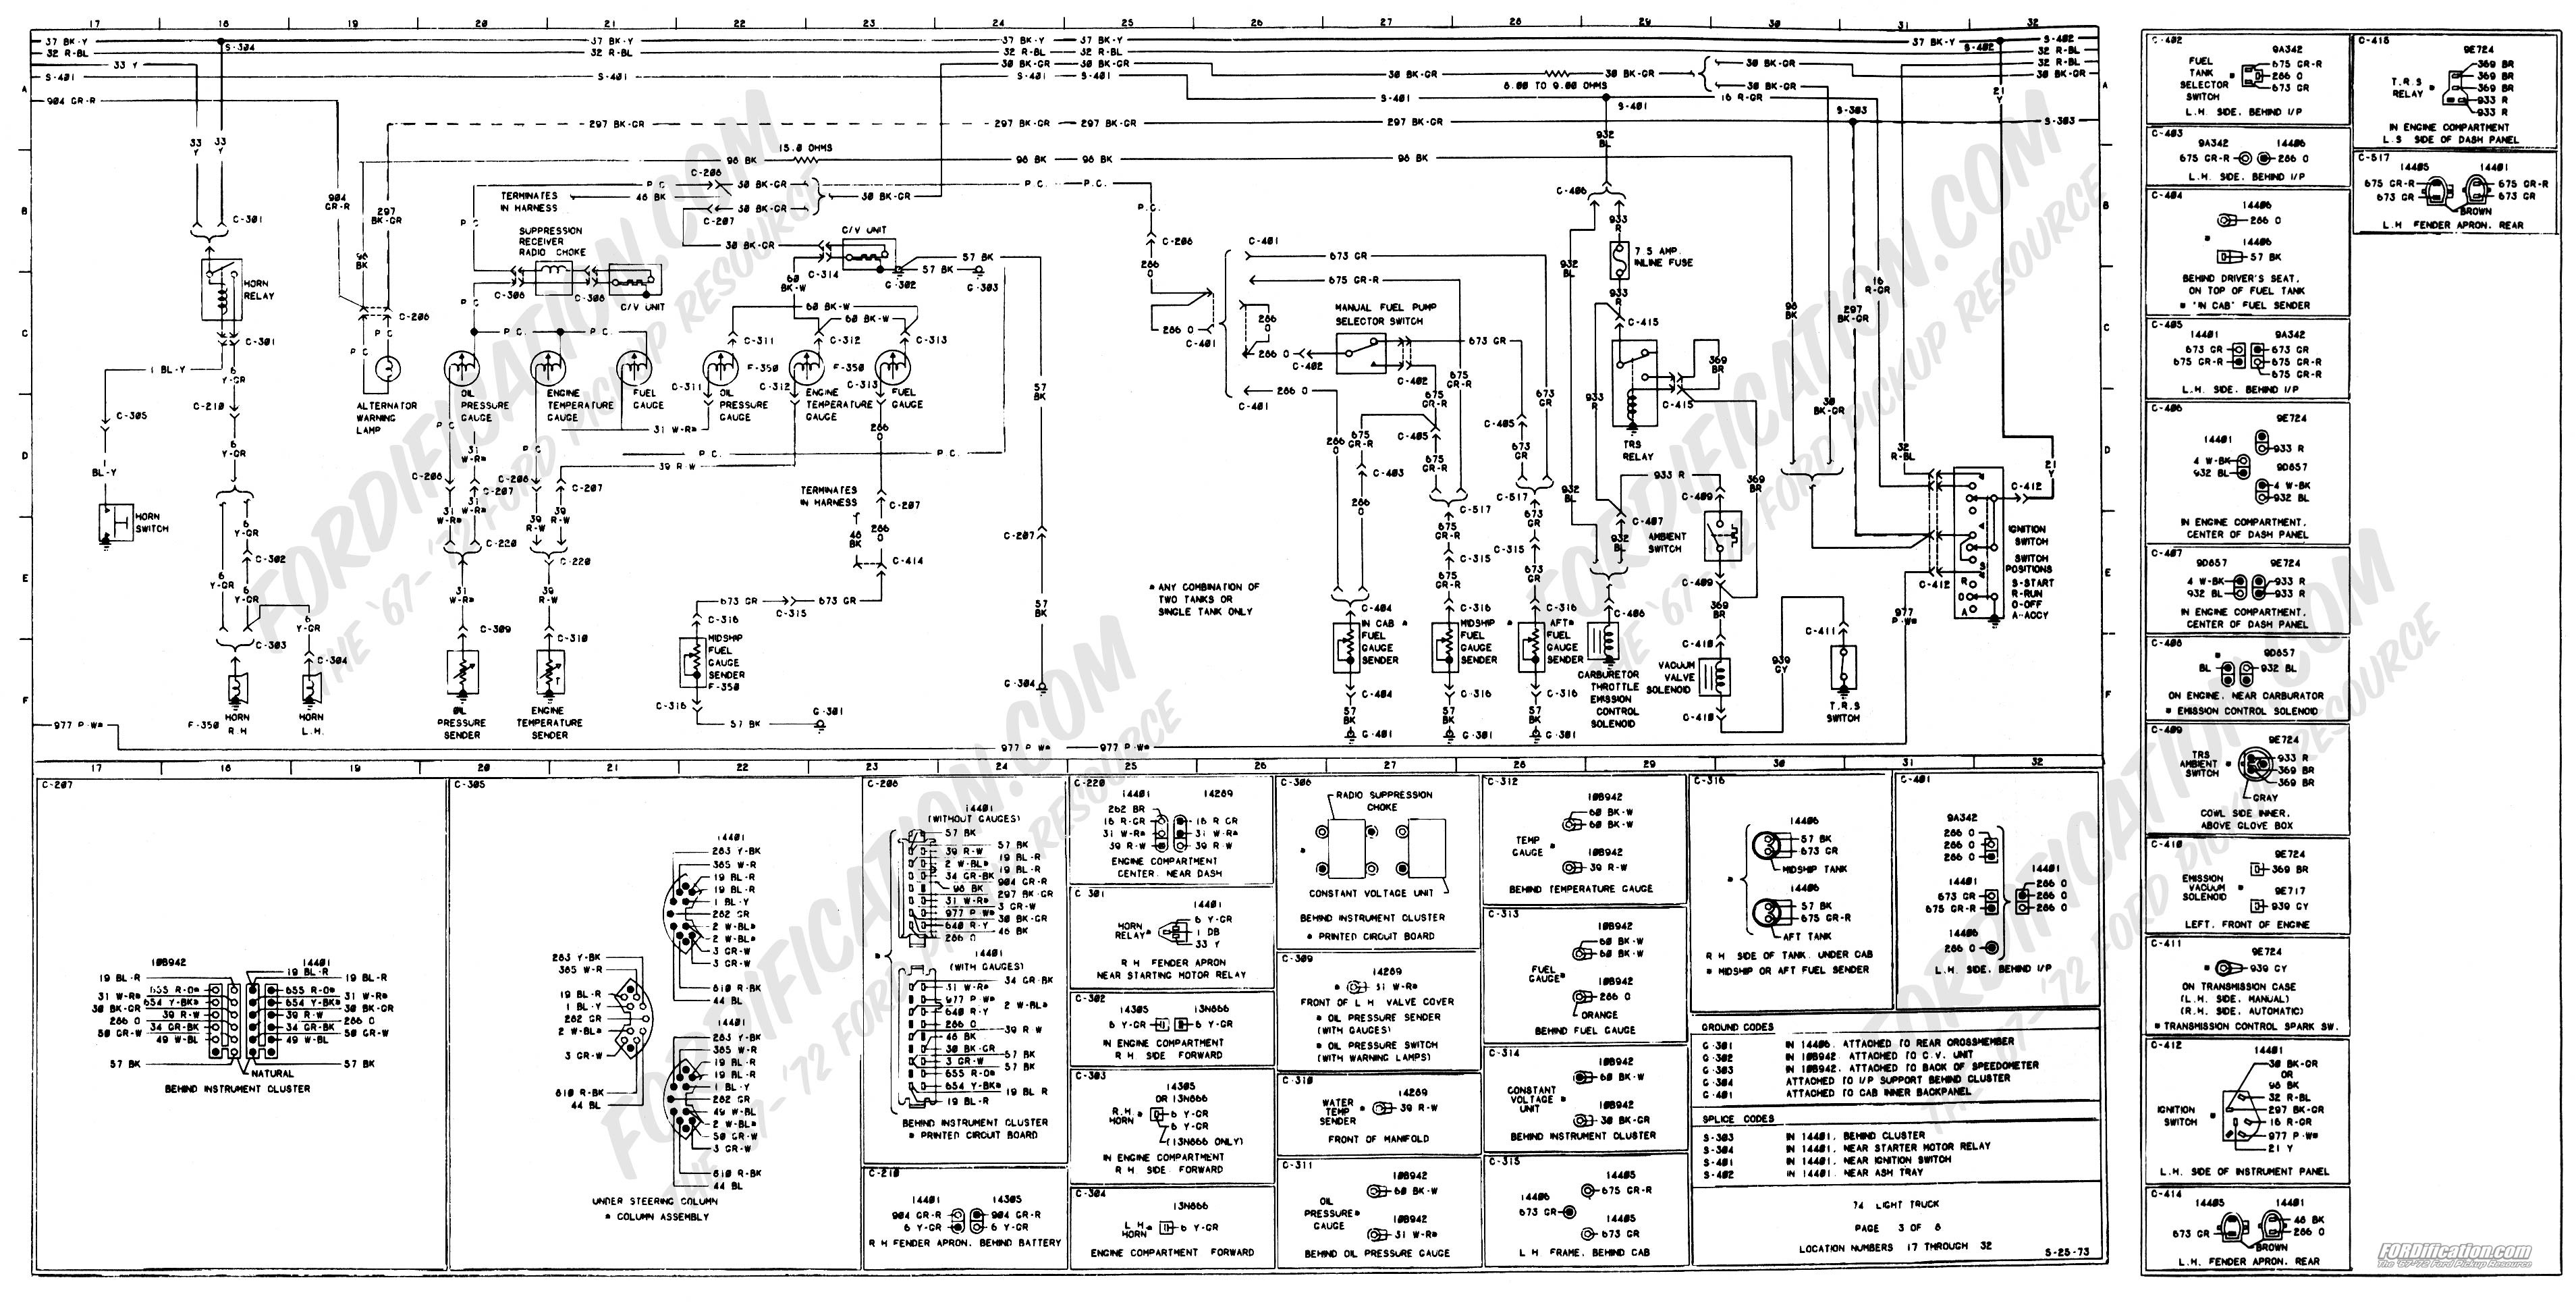 2001 F150 Wiring Diagram 1973 1979 ford Truck Wiring Diagrams & Schematics fordification Of 2001 F150 Wiring Diagram